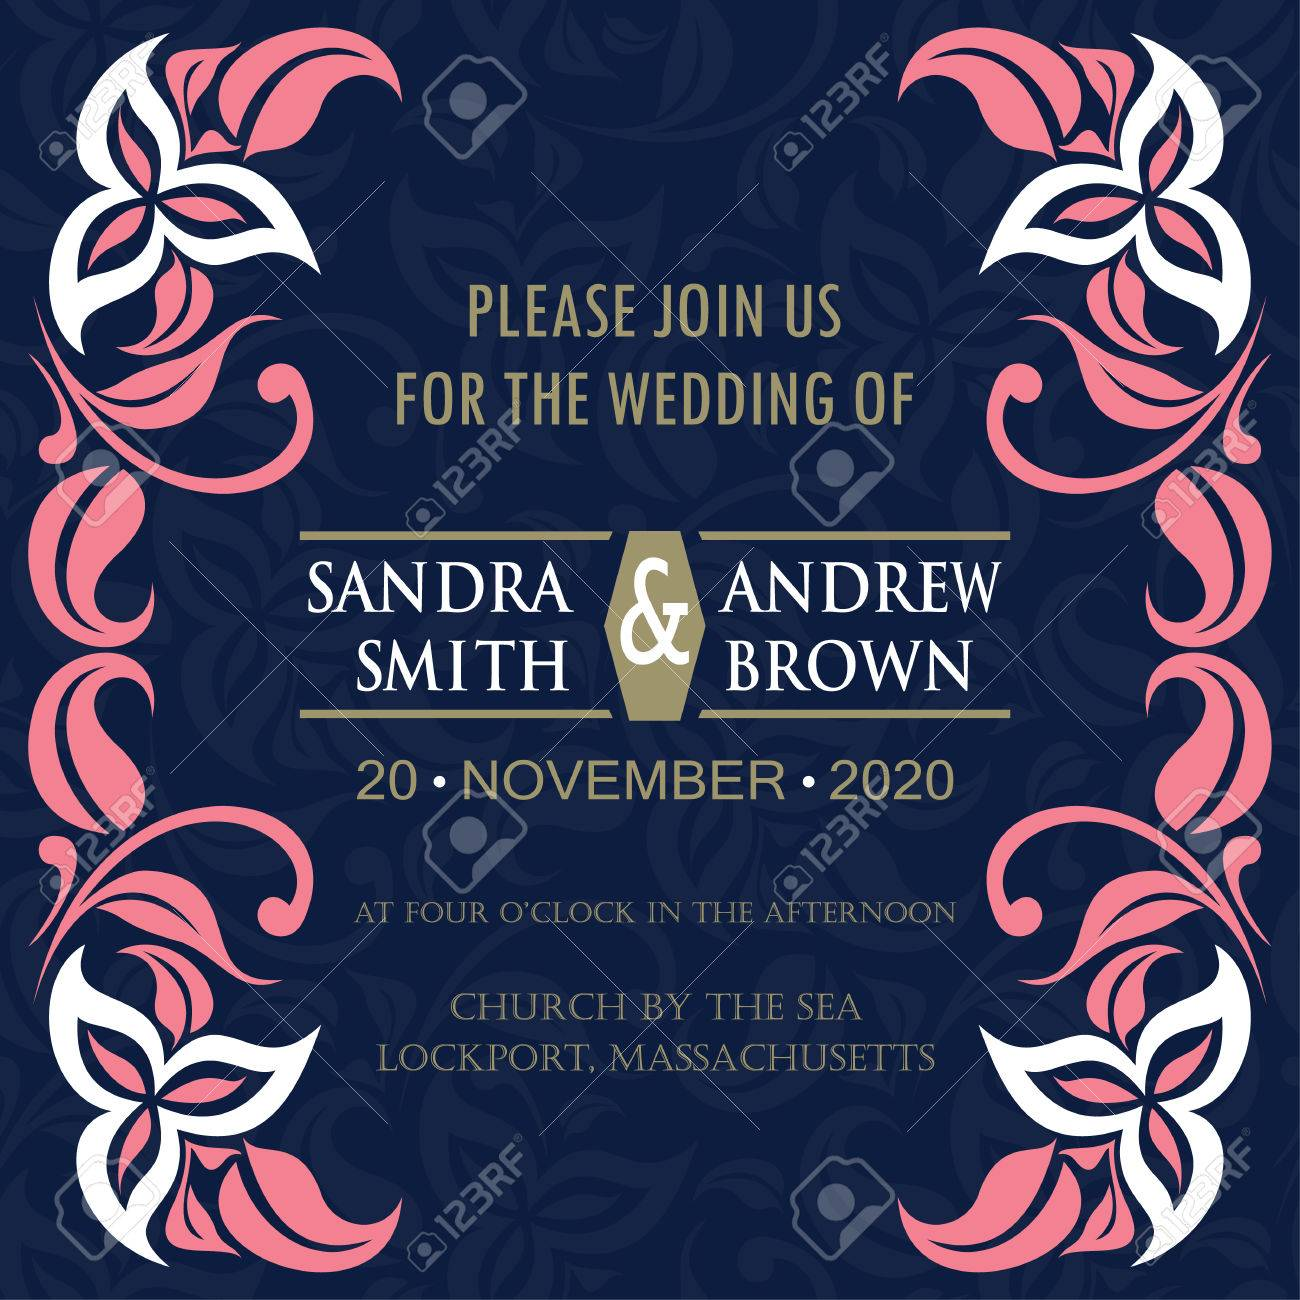 Navy And Coral Wedding.Navy And Coral Wedding Invitation Card